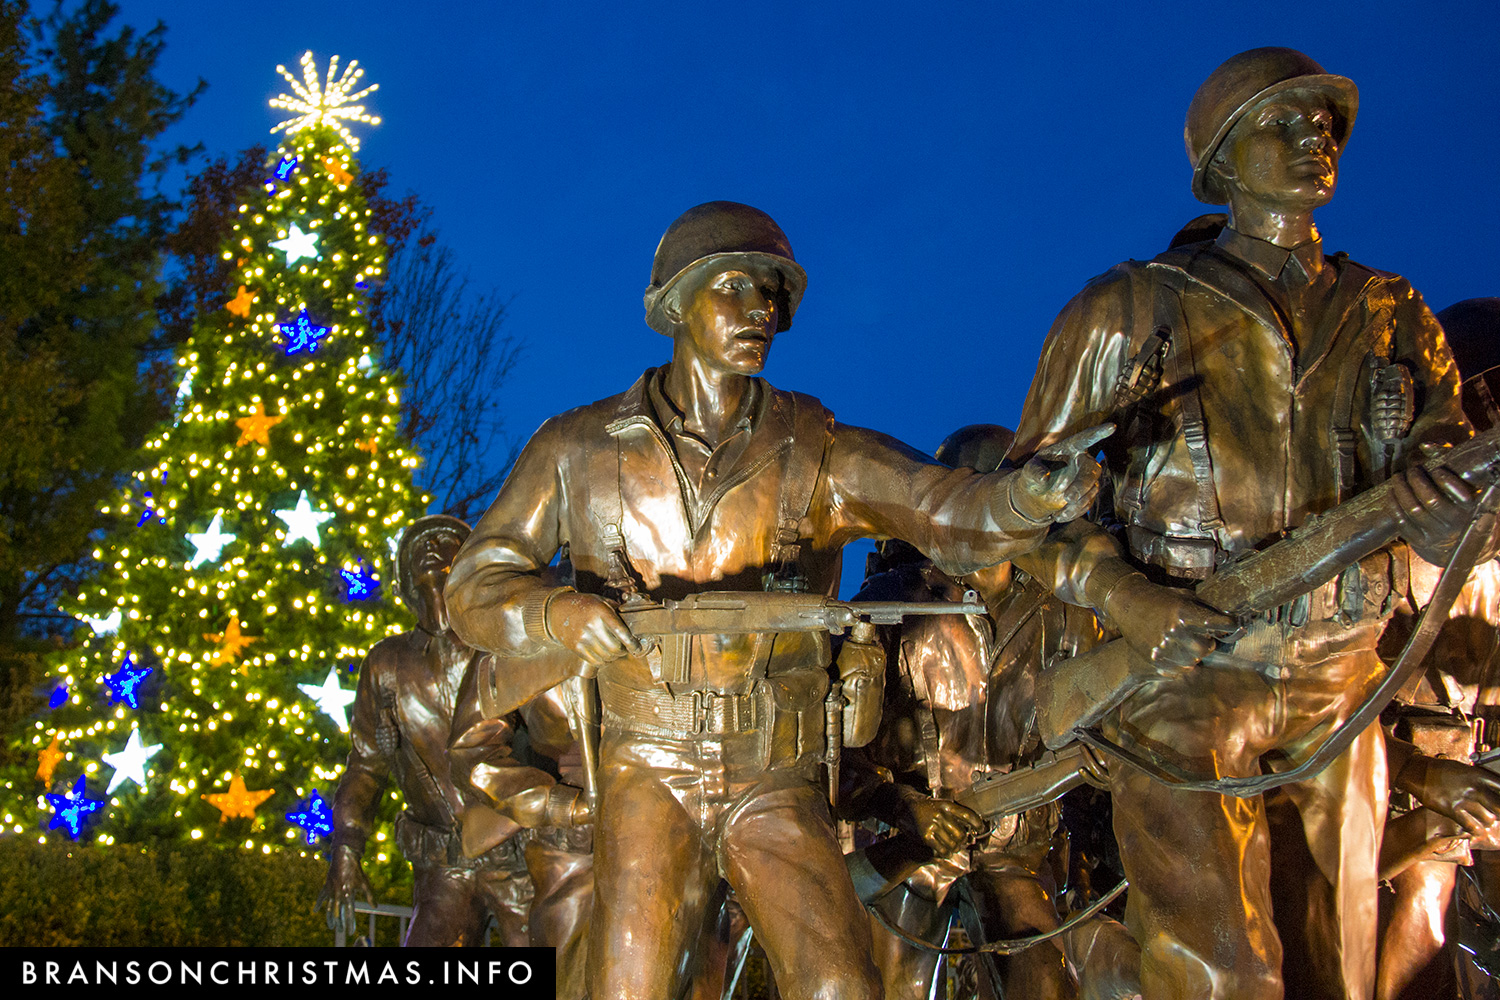 New Christmas tree honors military service veterans and families ...